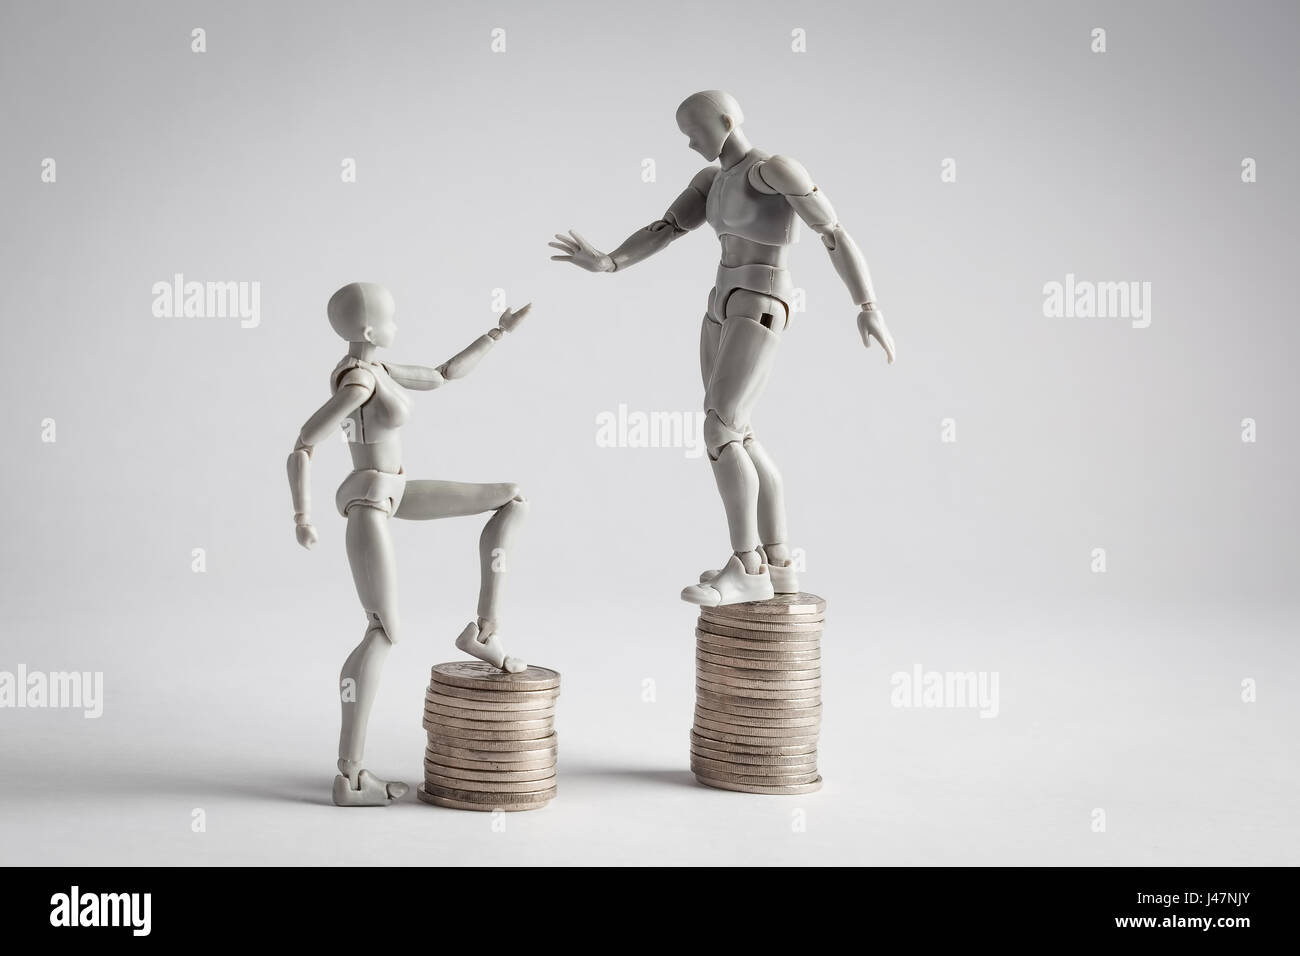 Income inequality concept shown with realistic male and female figurines and piles of coins. Female figurine extending - Stock Image